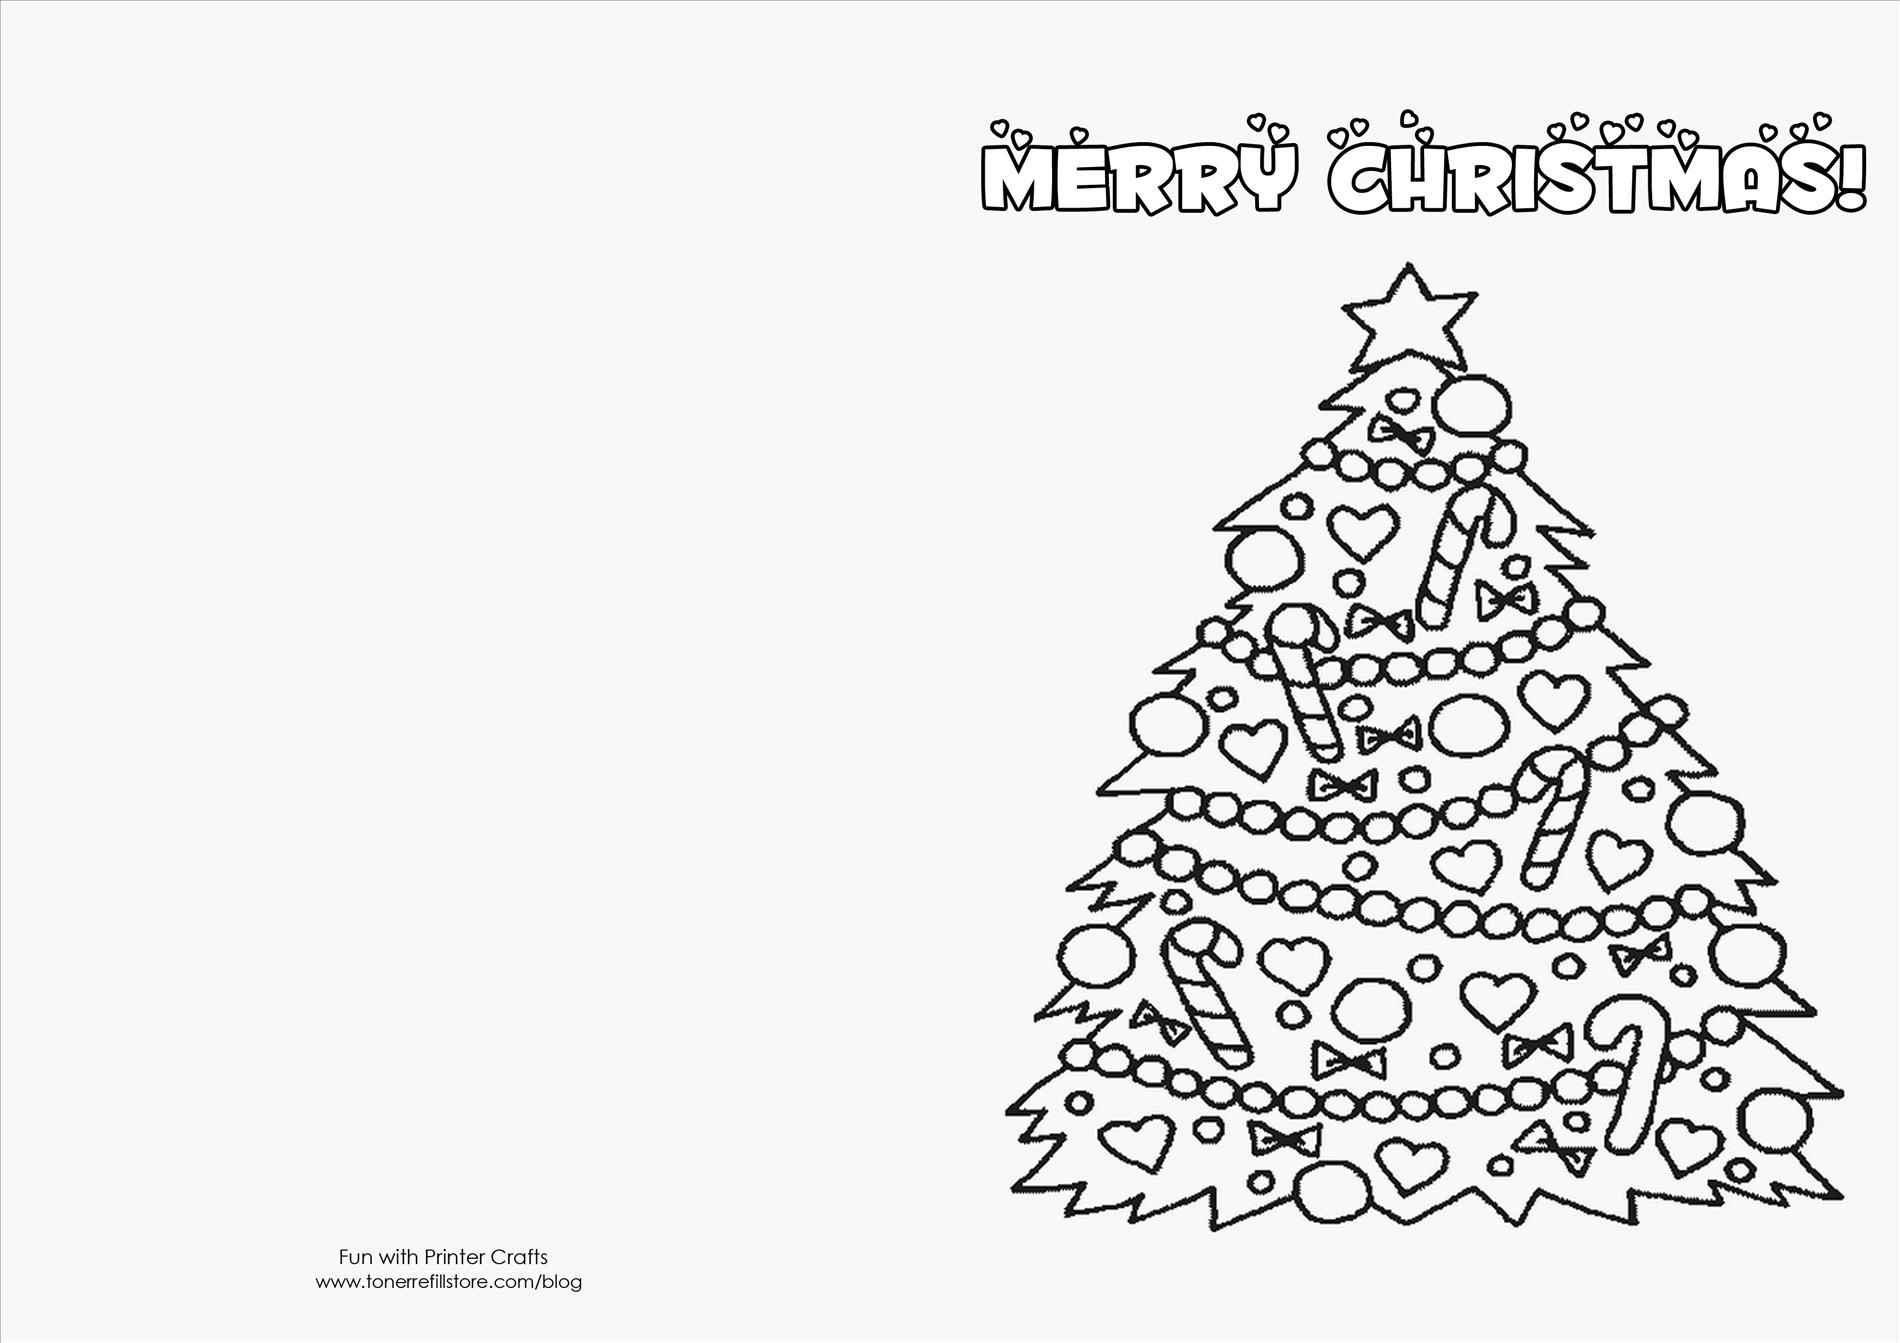 Printable Christmas Cards Templates | Theveliger - Free Printable Christmas Cards To Color